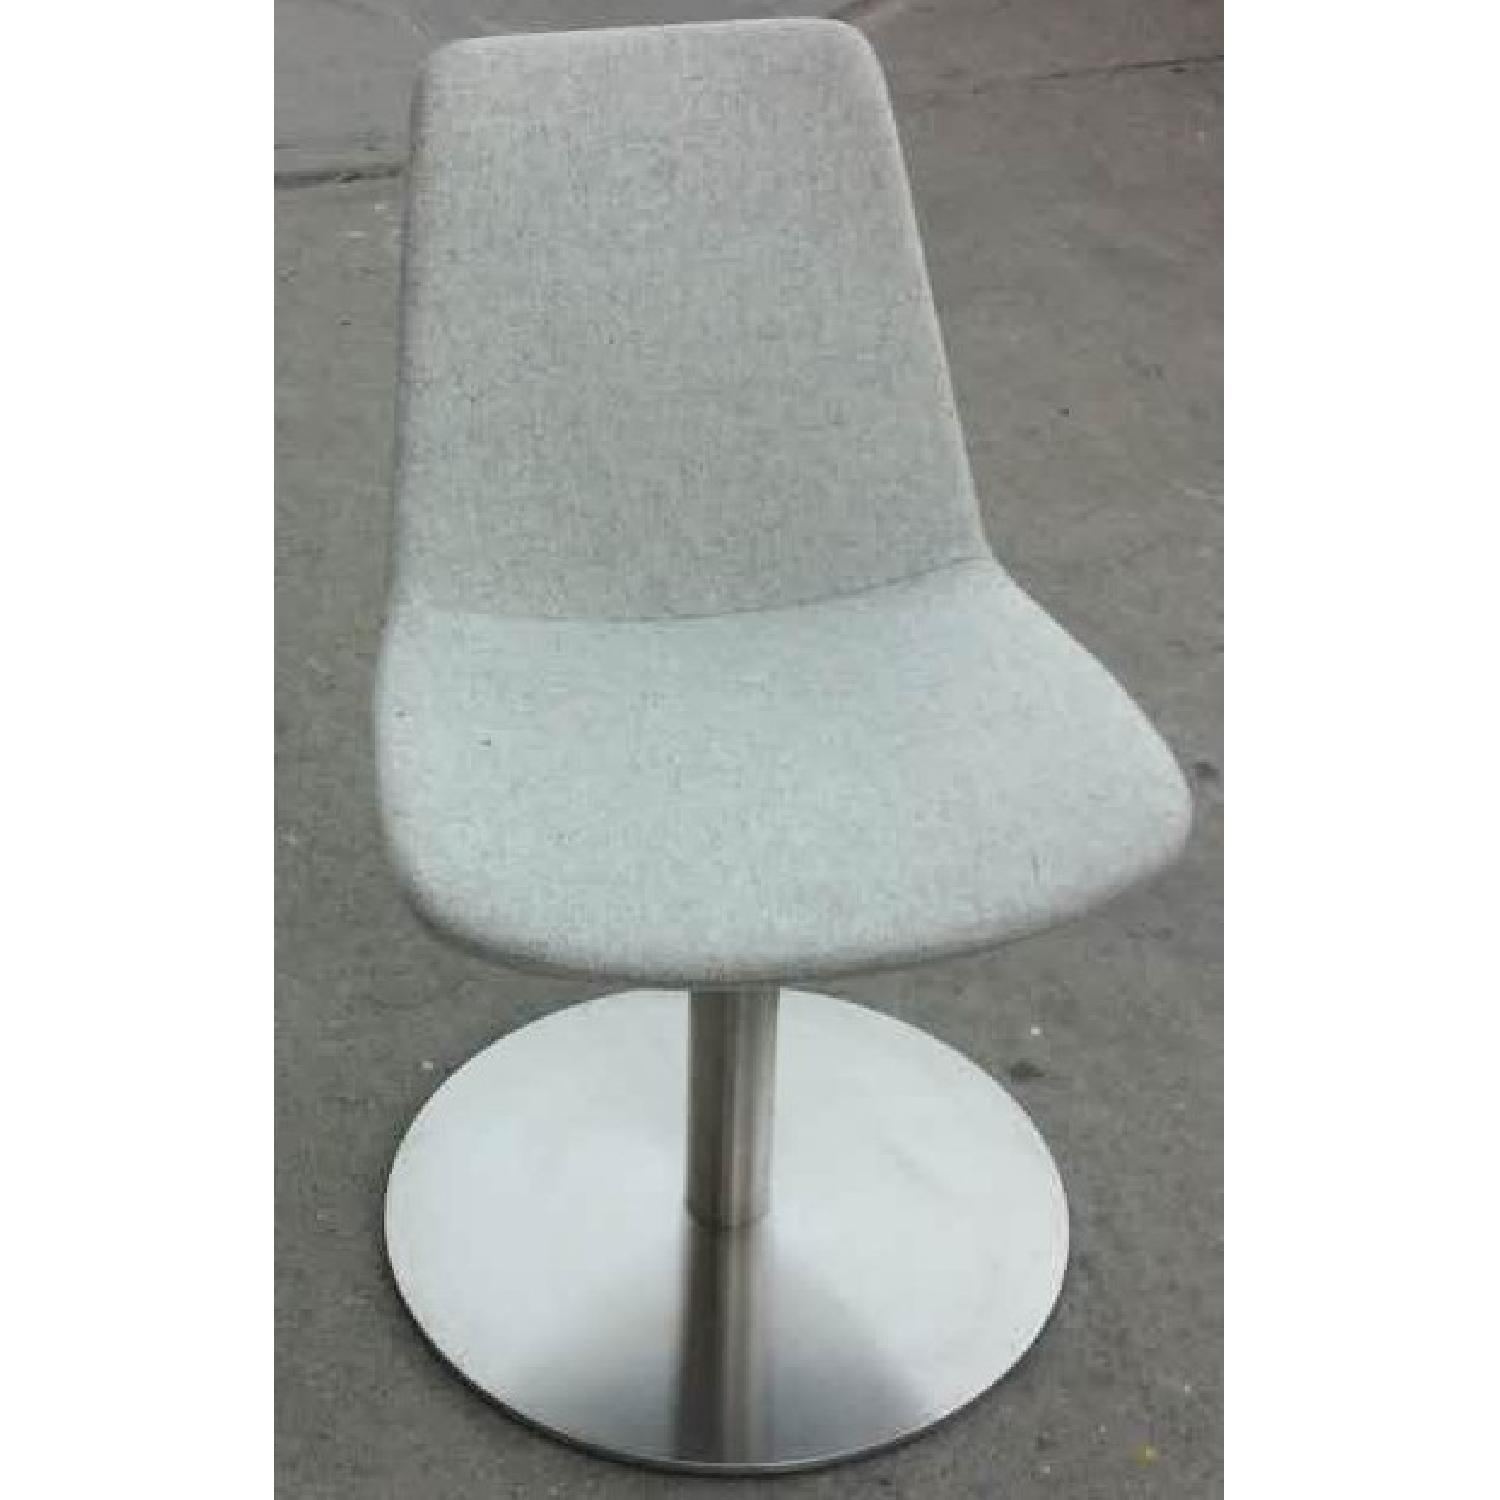 Groovy Sohoconcept Swivel Accent Dining Chair In Light Wool Fabric Uwap Interior Chair Design Uwaporg